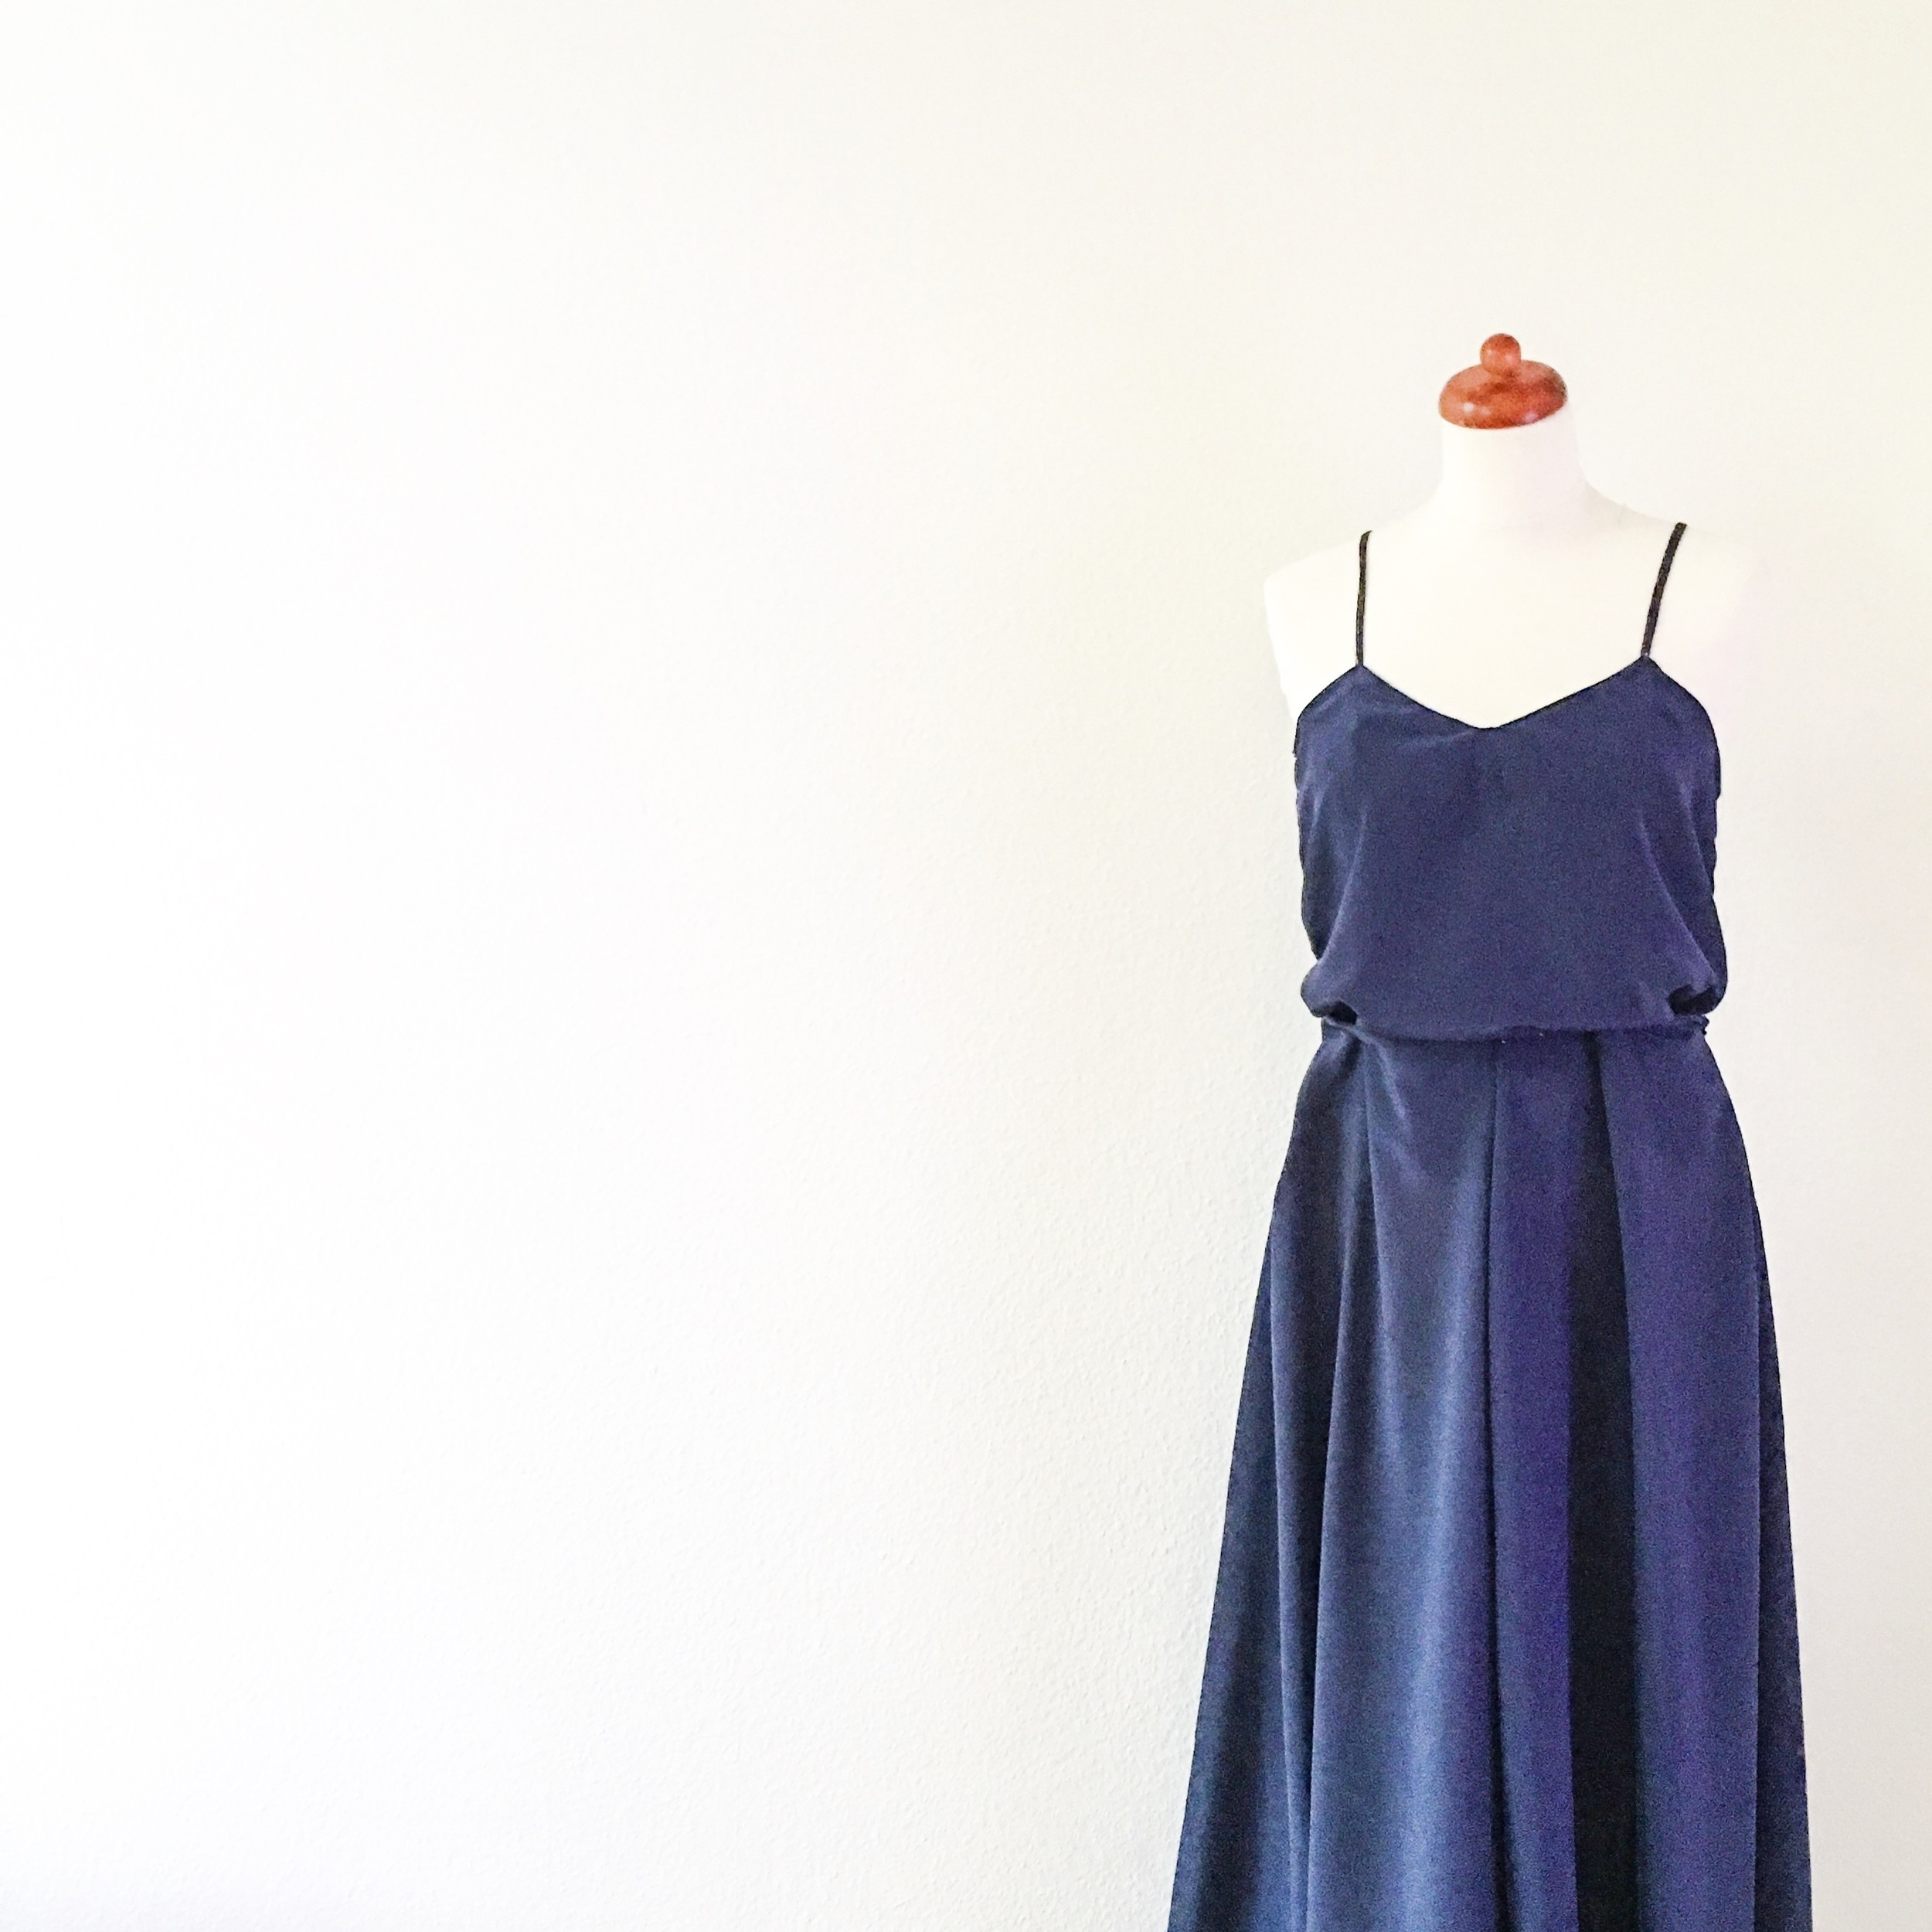 VOGUE VINTAGE DRESS - temporary stitched and ready for fitting